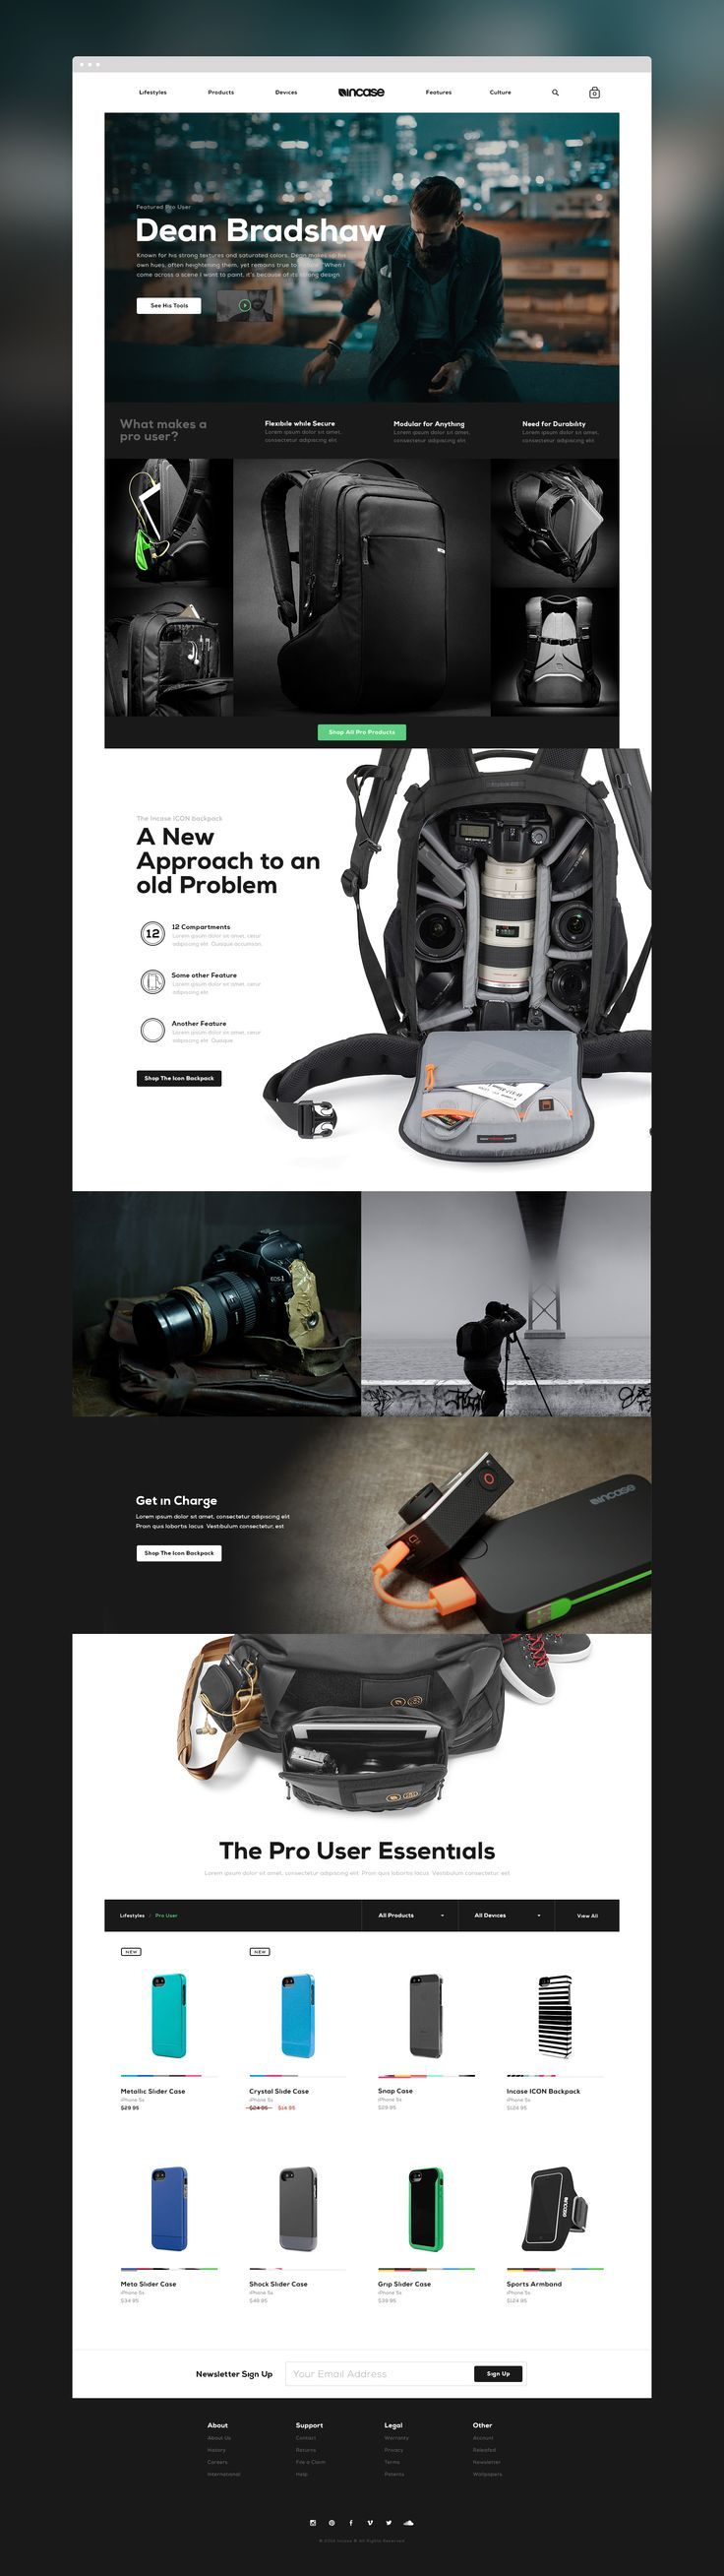 Inspirational Website UX/UI design samples. Visit us at: www.sodapopmedia.com #WebDesign #UX #UI #WebPageLayout #DigitalDesign #Web #Website #Design #Layout